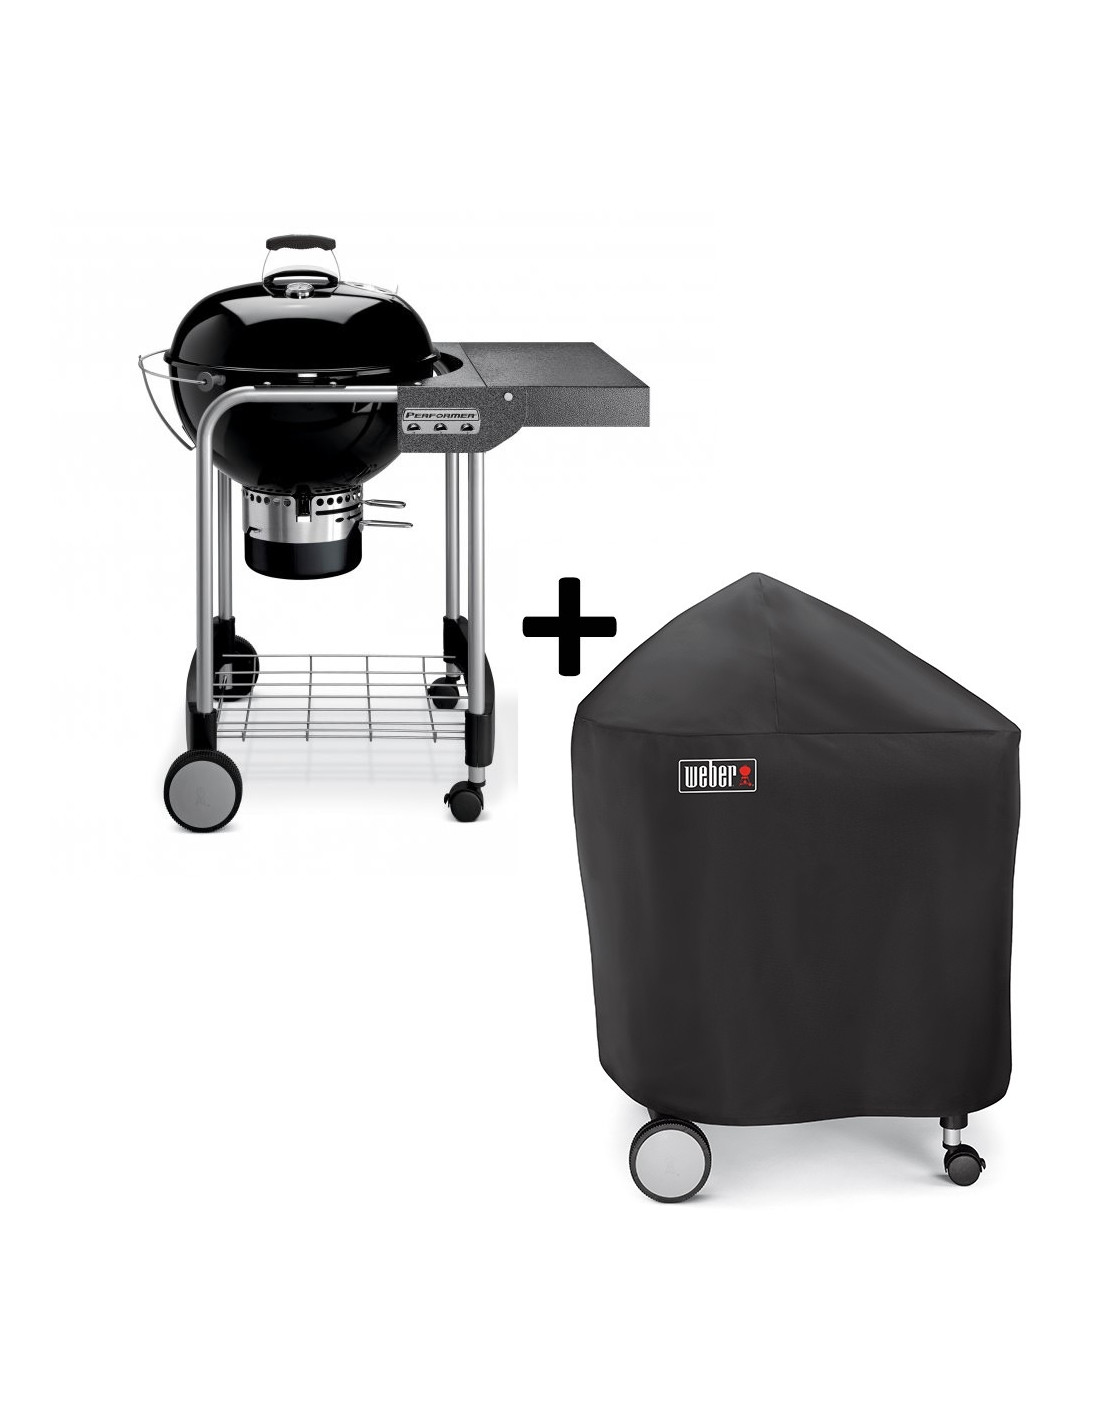 Barbecue weber charbon performer original 57cm gbs housse - Housse barbecue weber ...